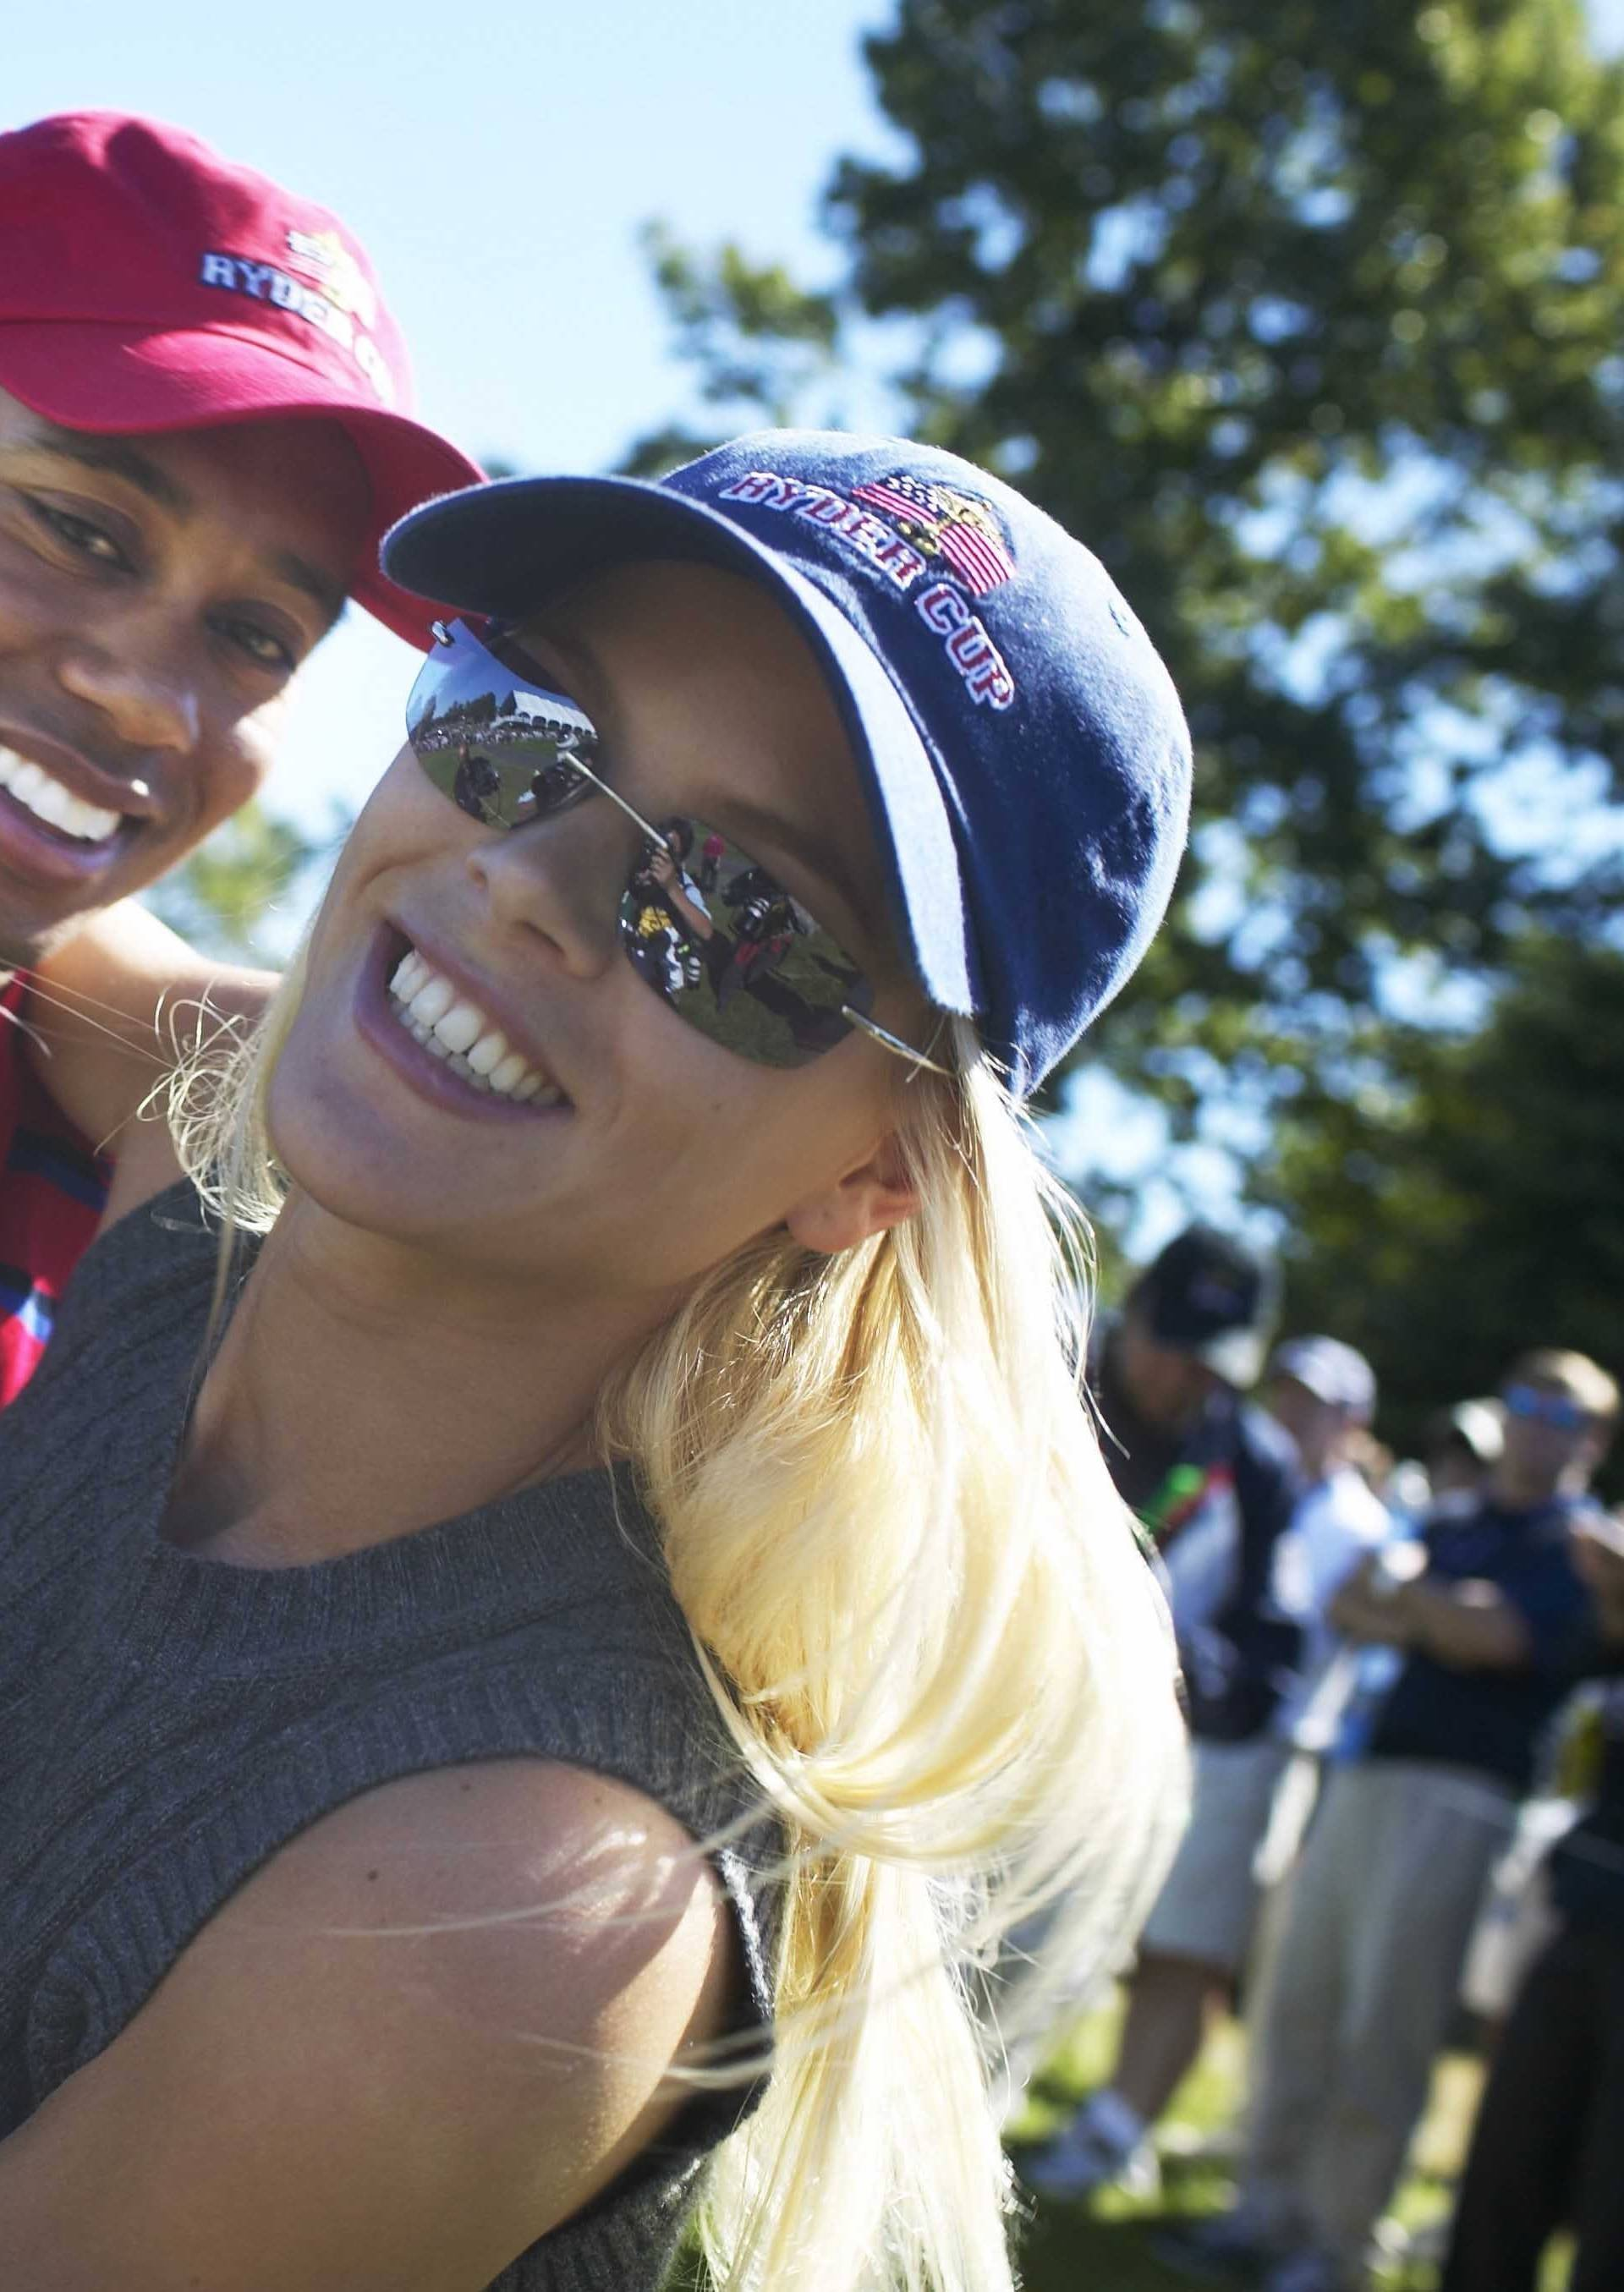 USA, Ryder Cup, Tiger Woods and Elin Nordegren